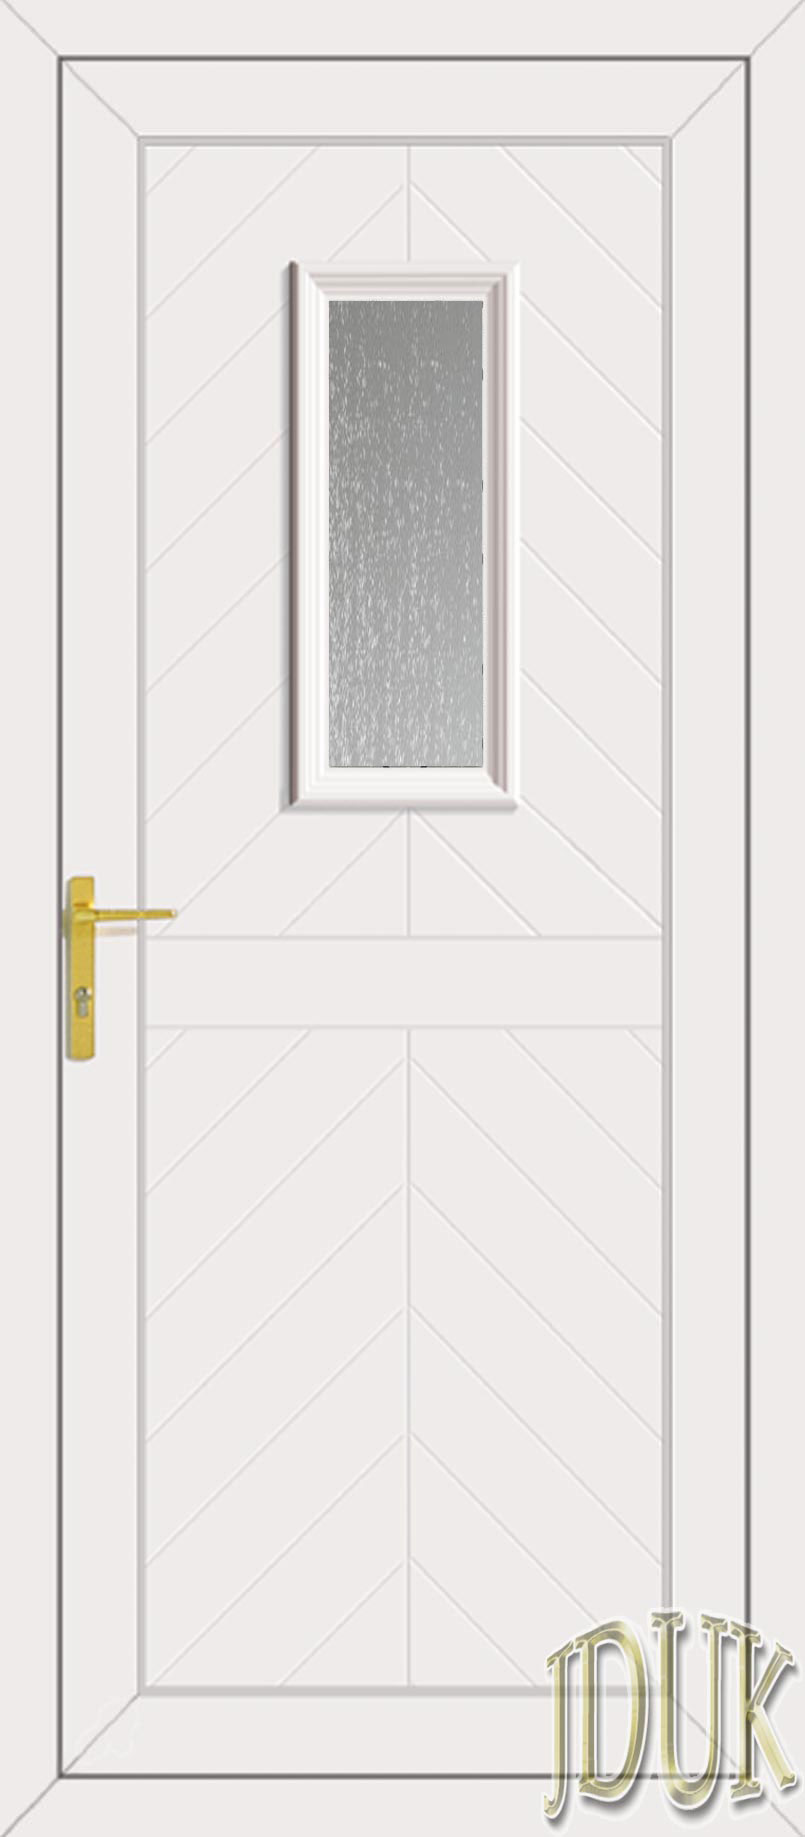 doorsandwindows backdoors residential door windows sussexsurrey back doors